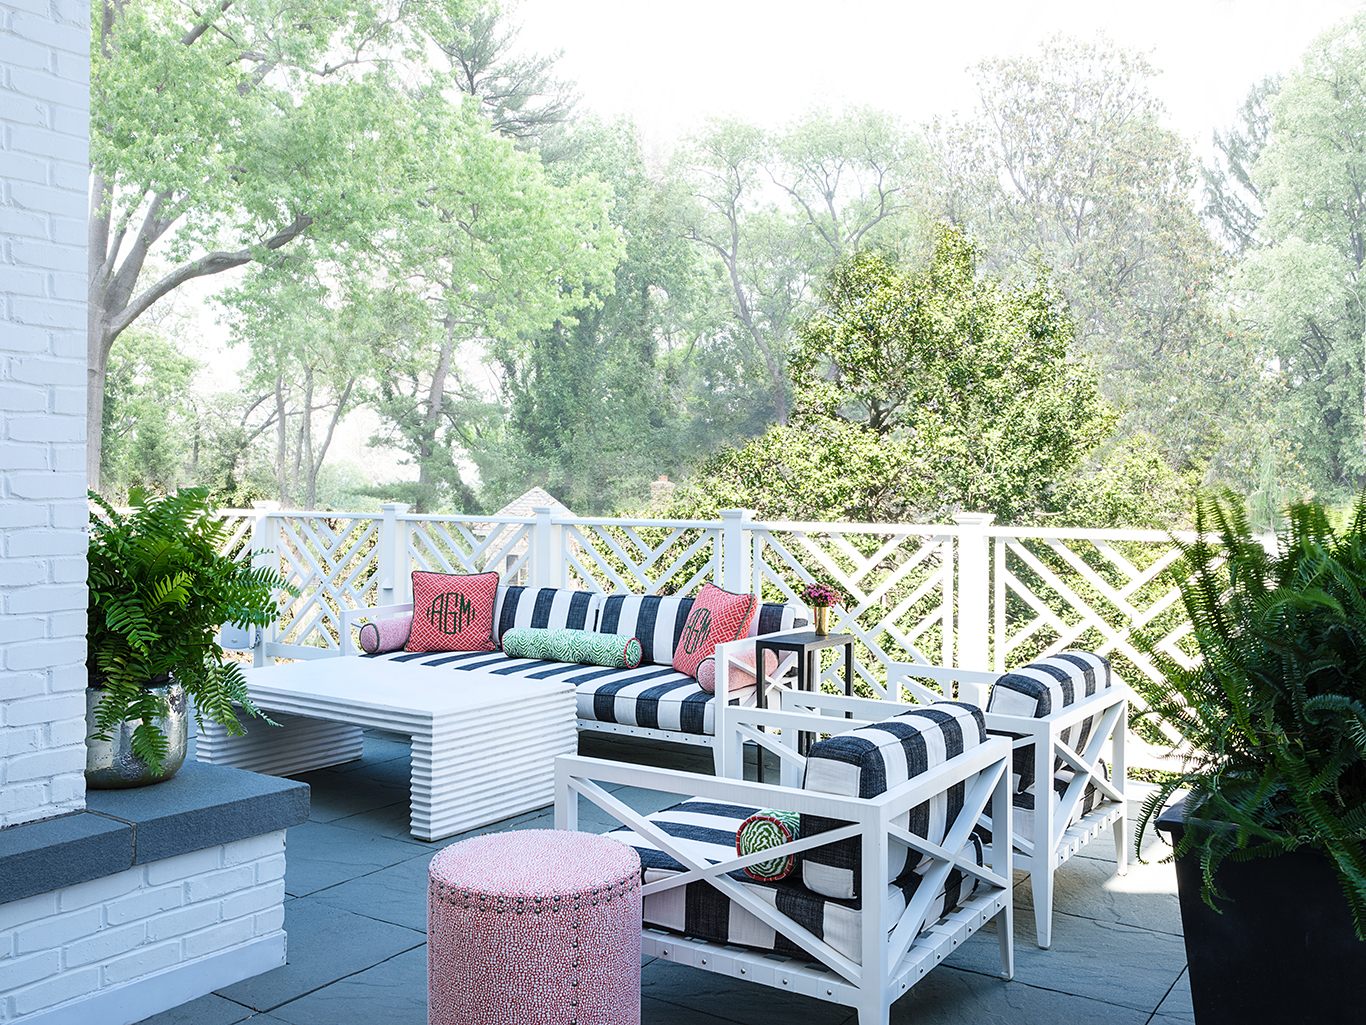 Here, the more muted tones allow the coral to really pop and make this terrace space inviting.